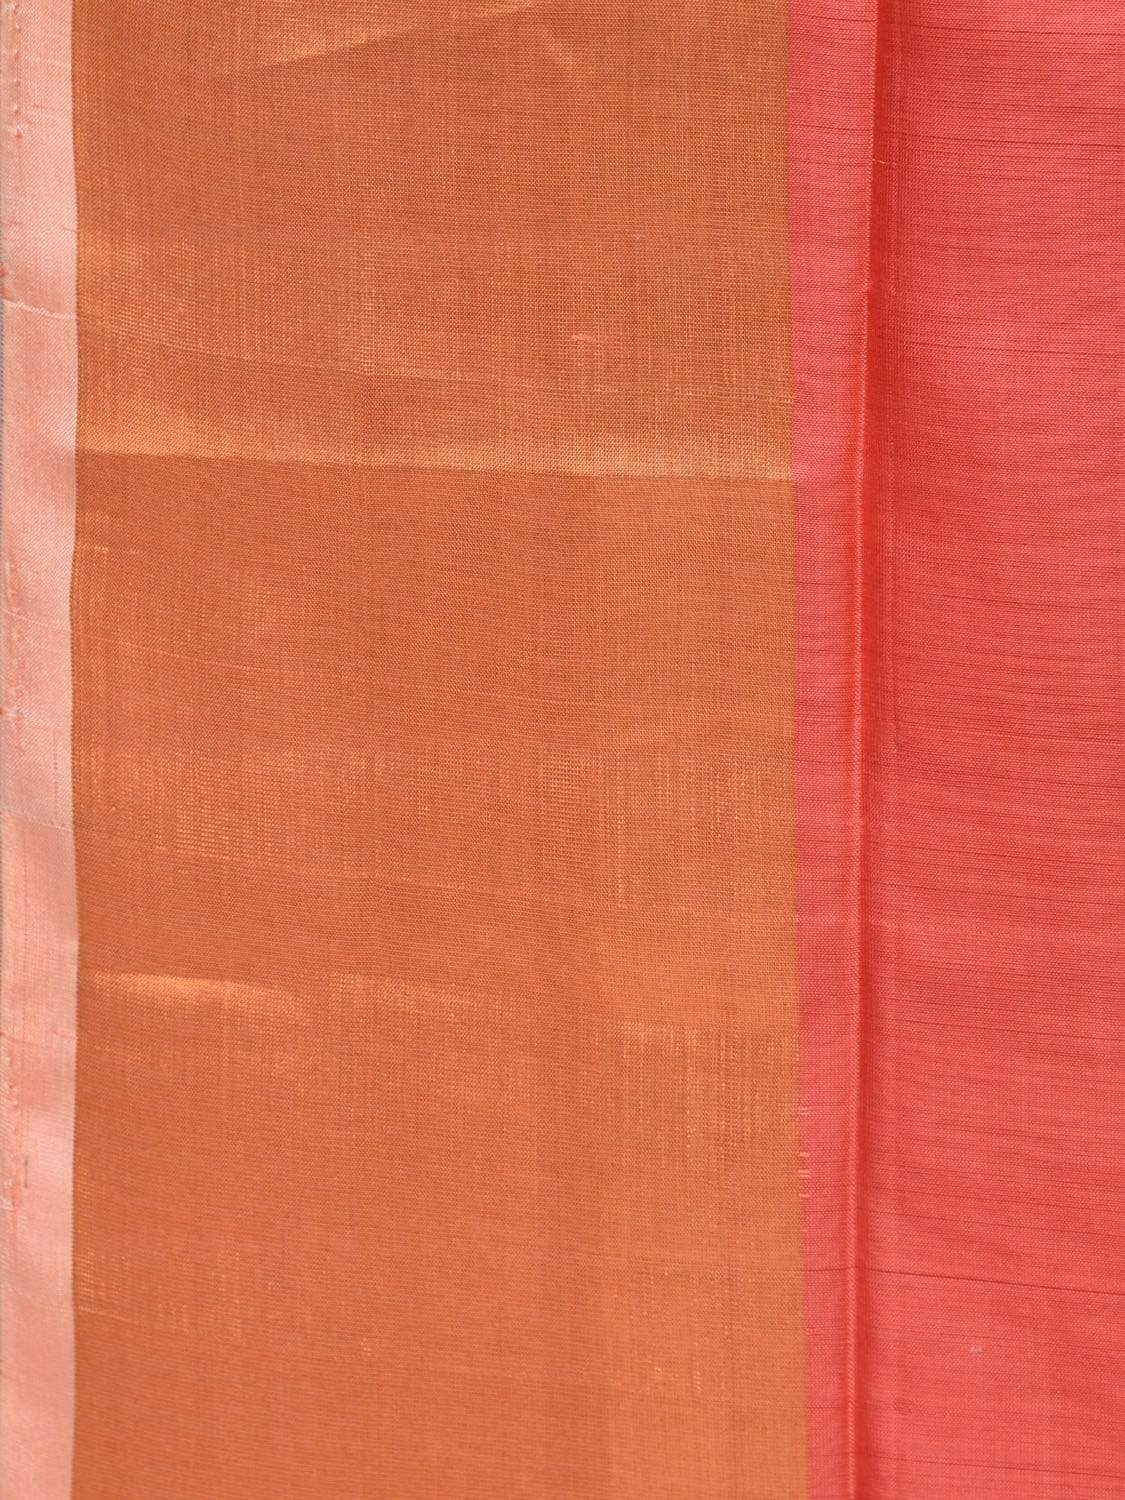 Peach and Cream Uppada Silk Handloom Plain Saree with Contrast Pallu u1602